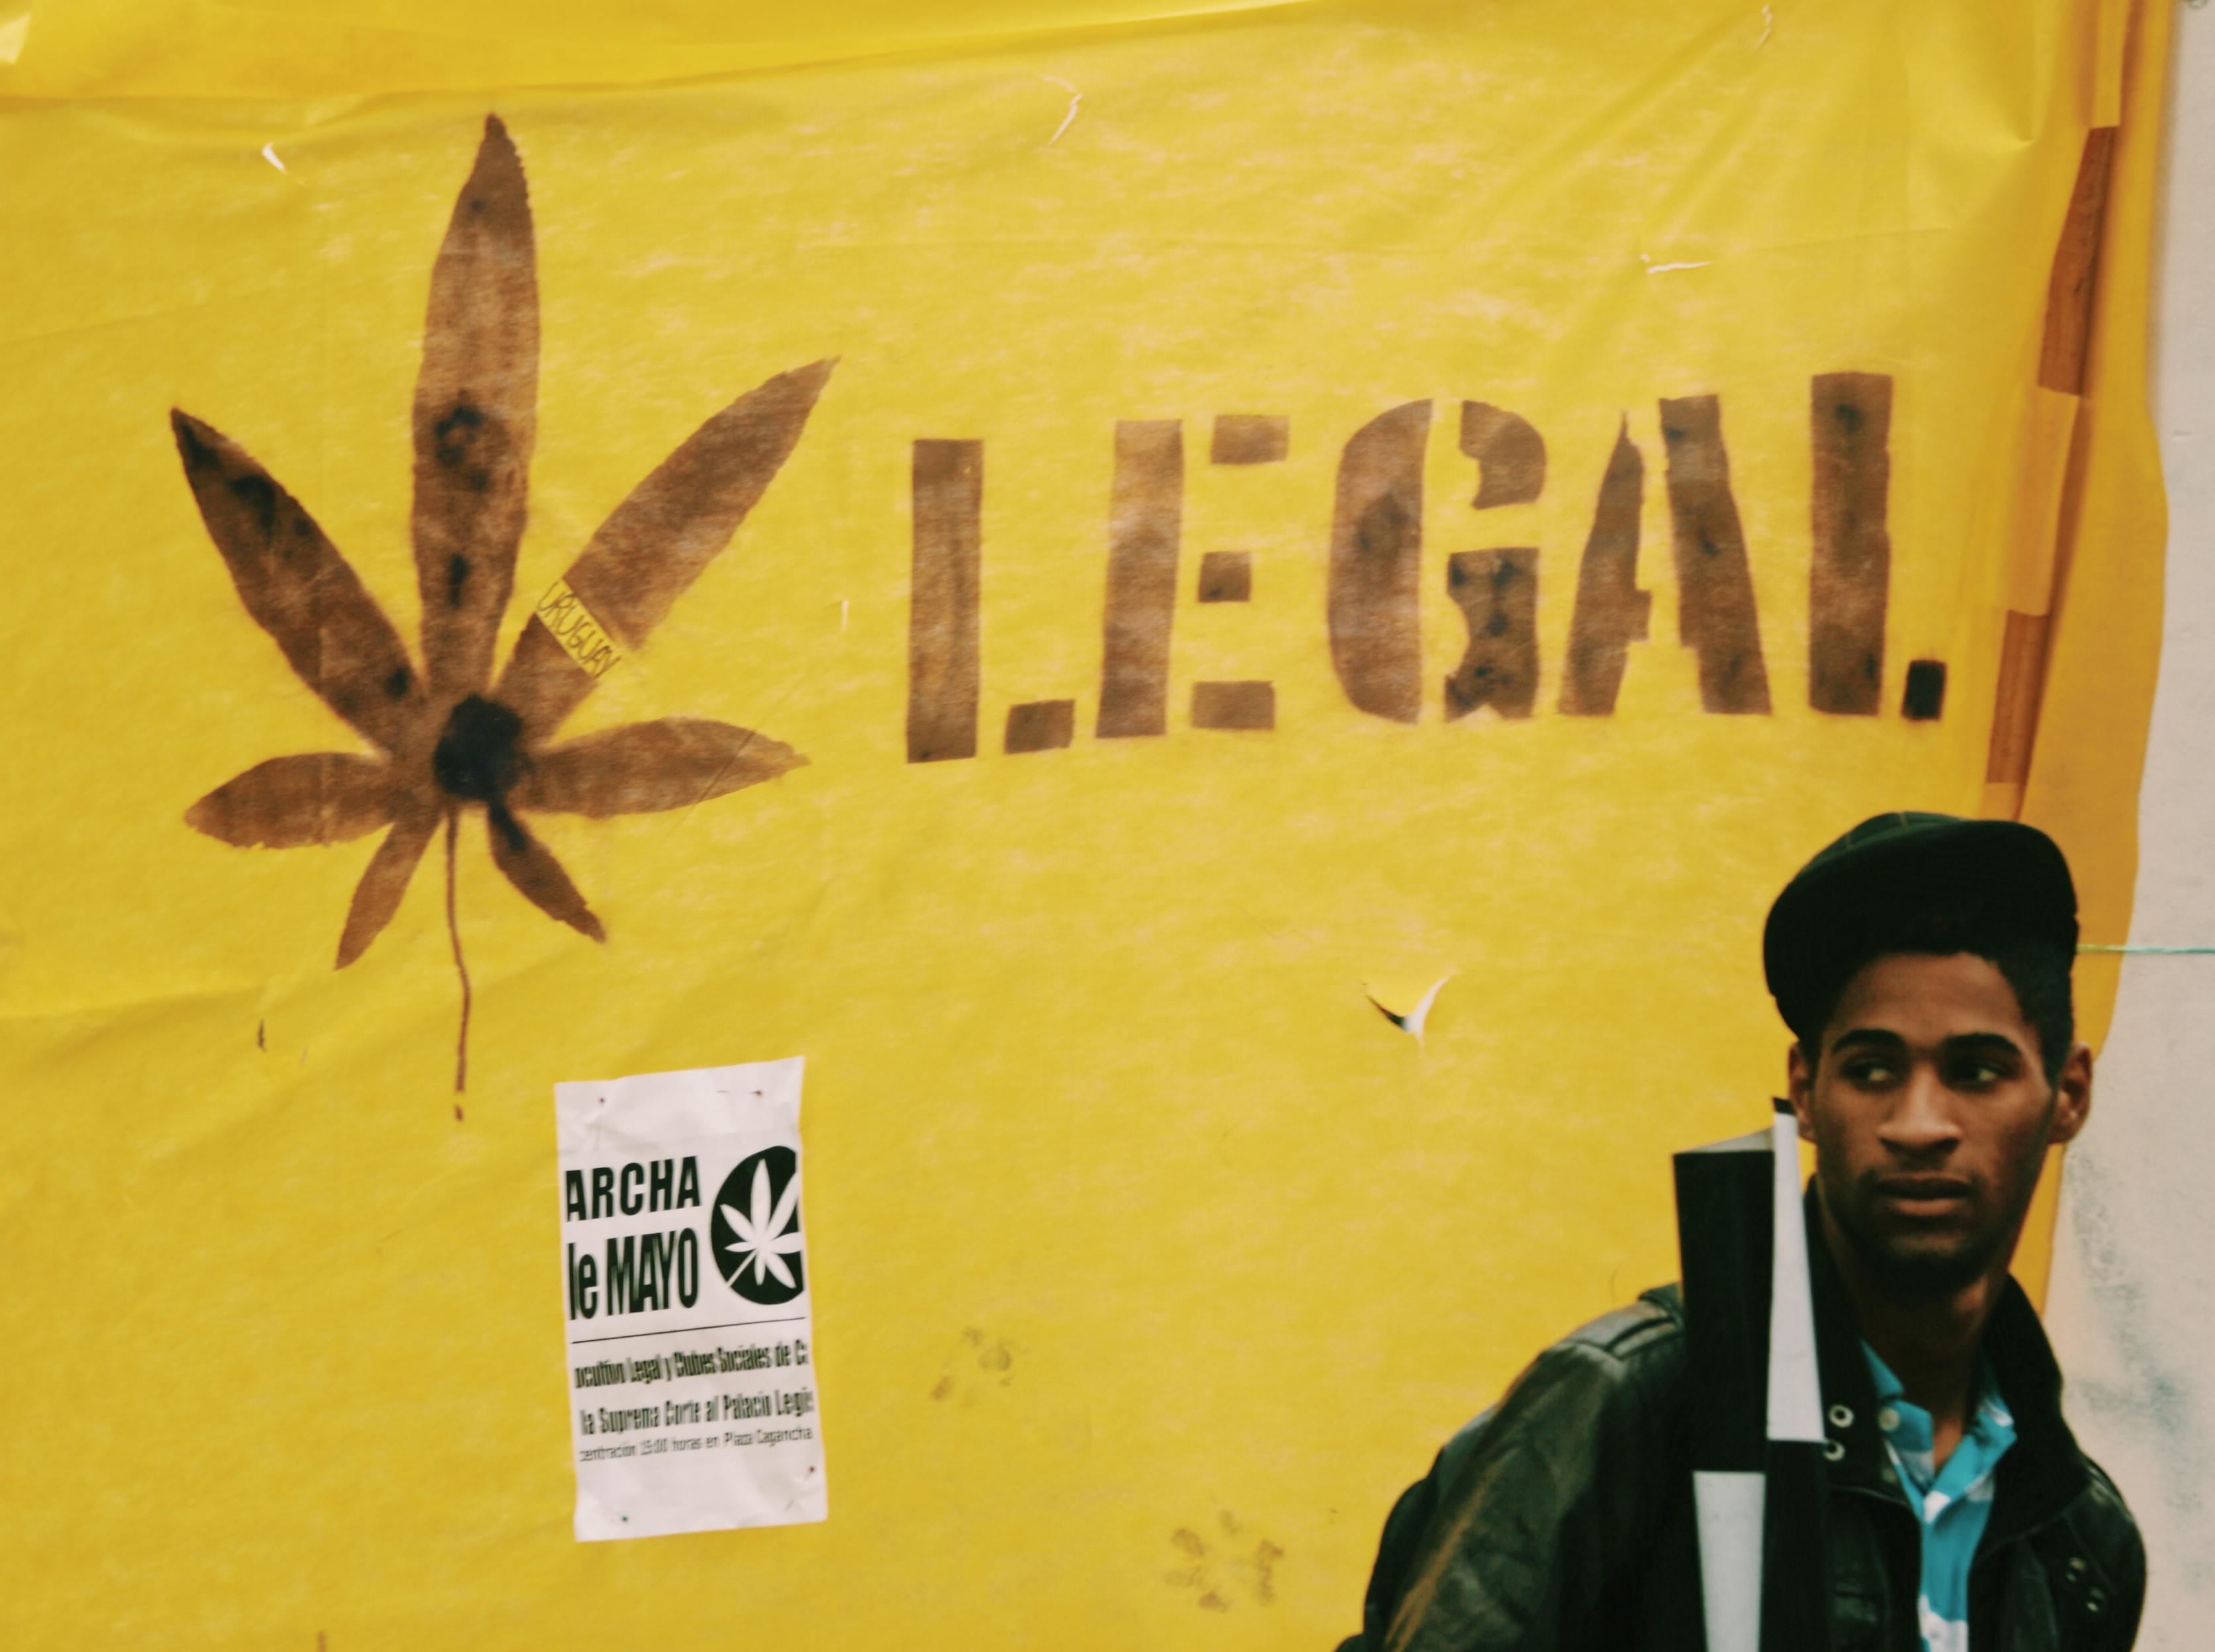 legalize cannabis sign, man in front of yellow cannabis sign